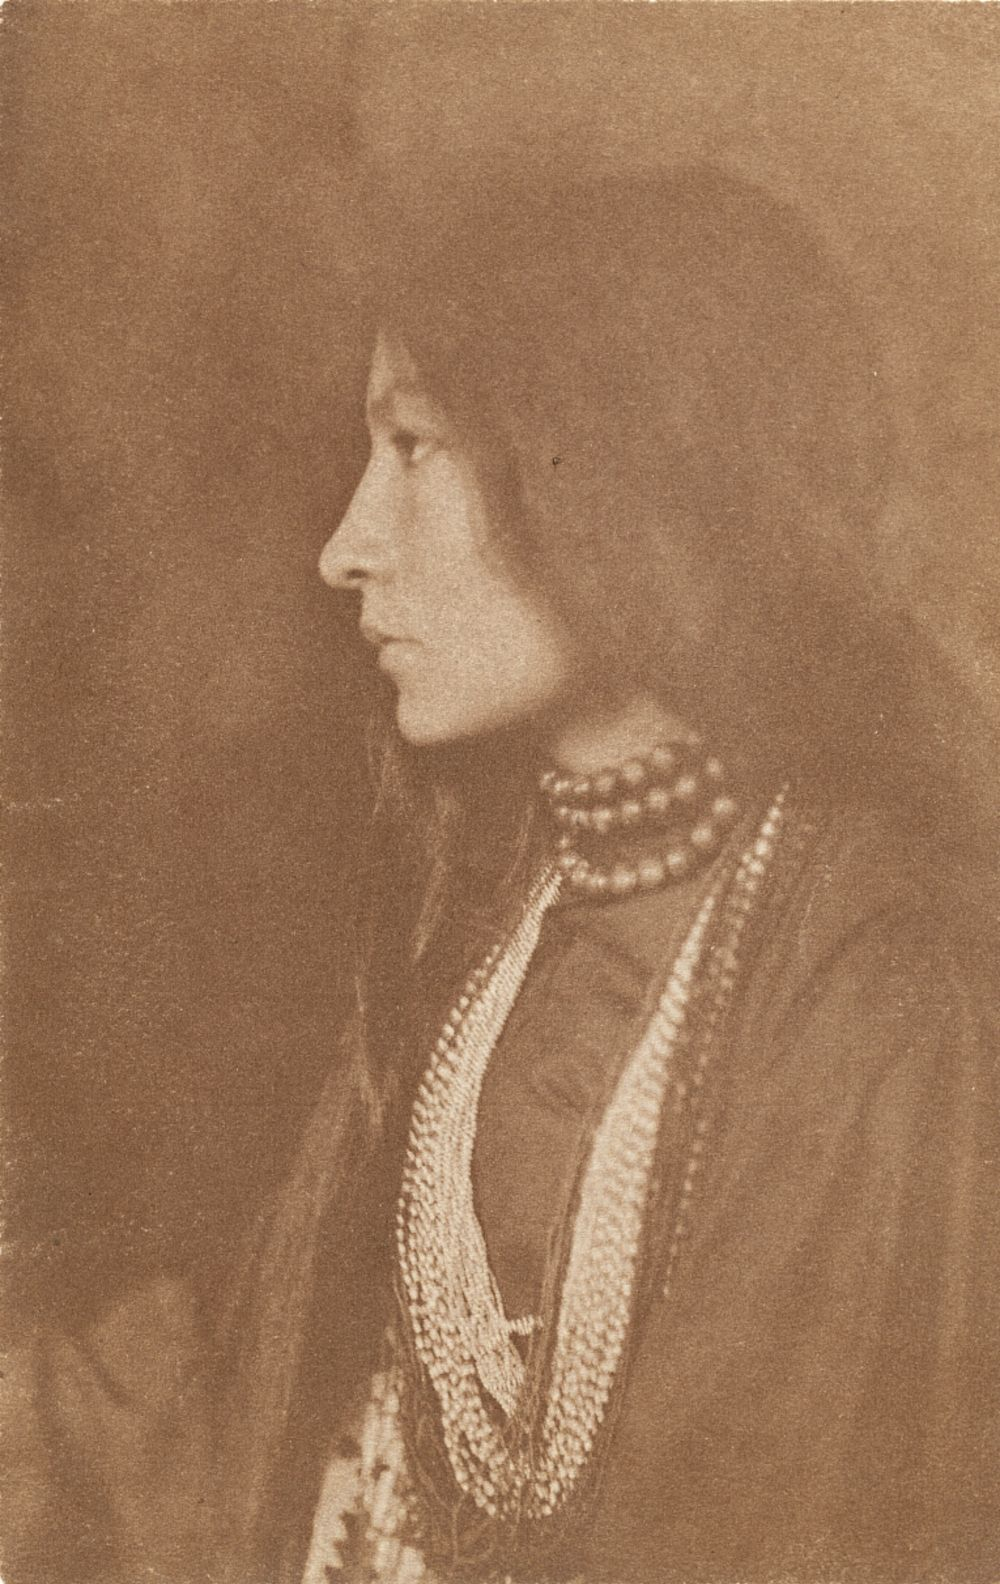 10 Breathtaking Portraits of Sioux Indian and Activist ...Zitkala Sa